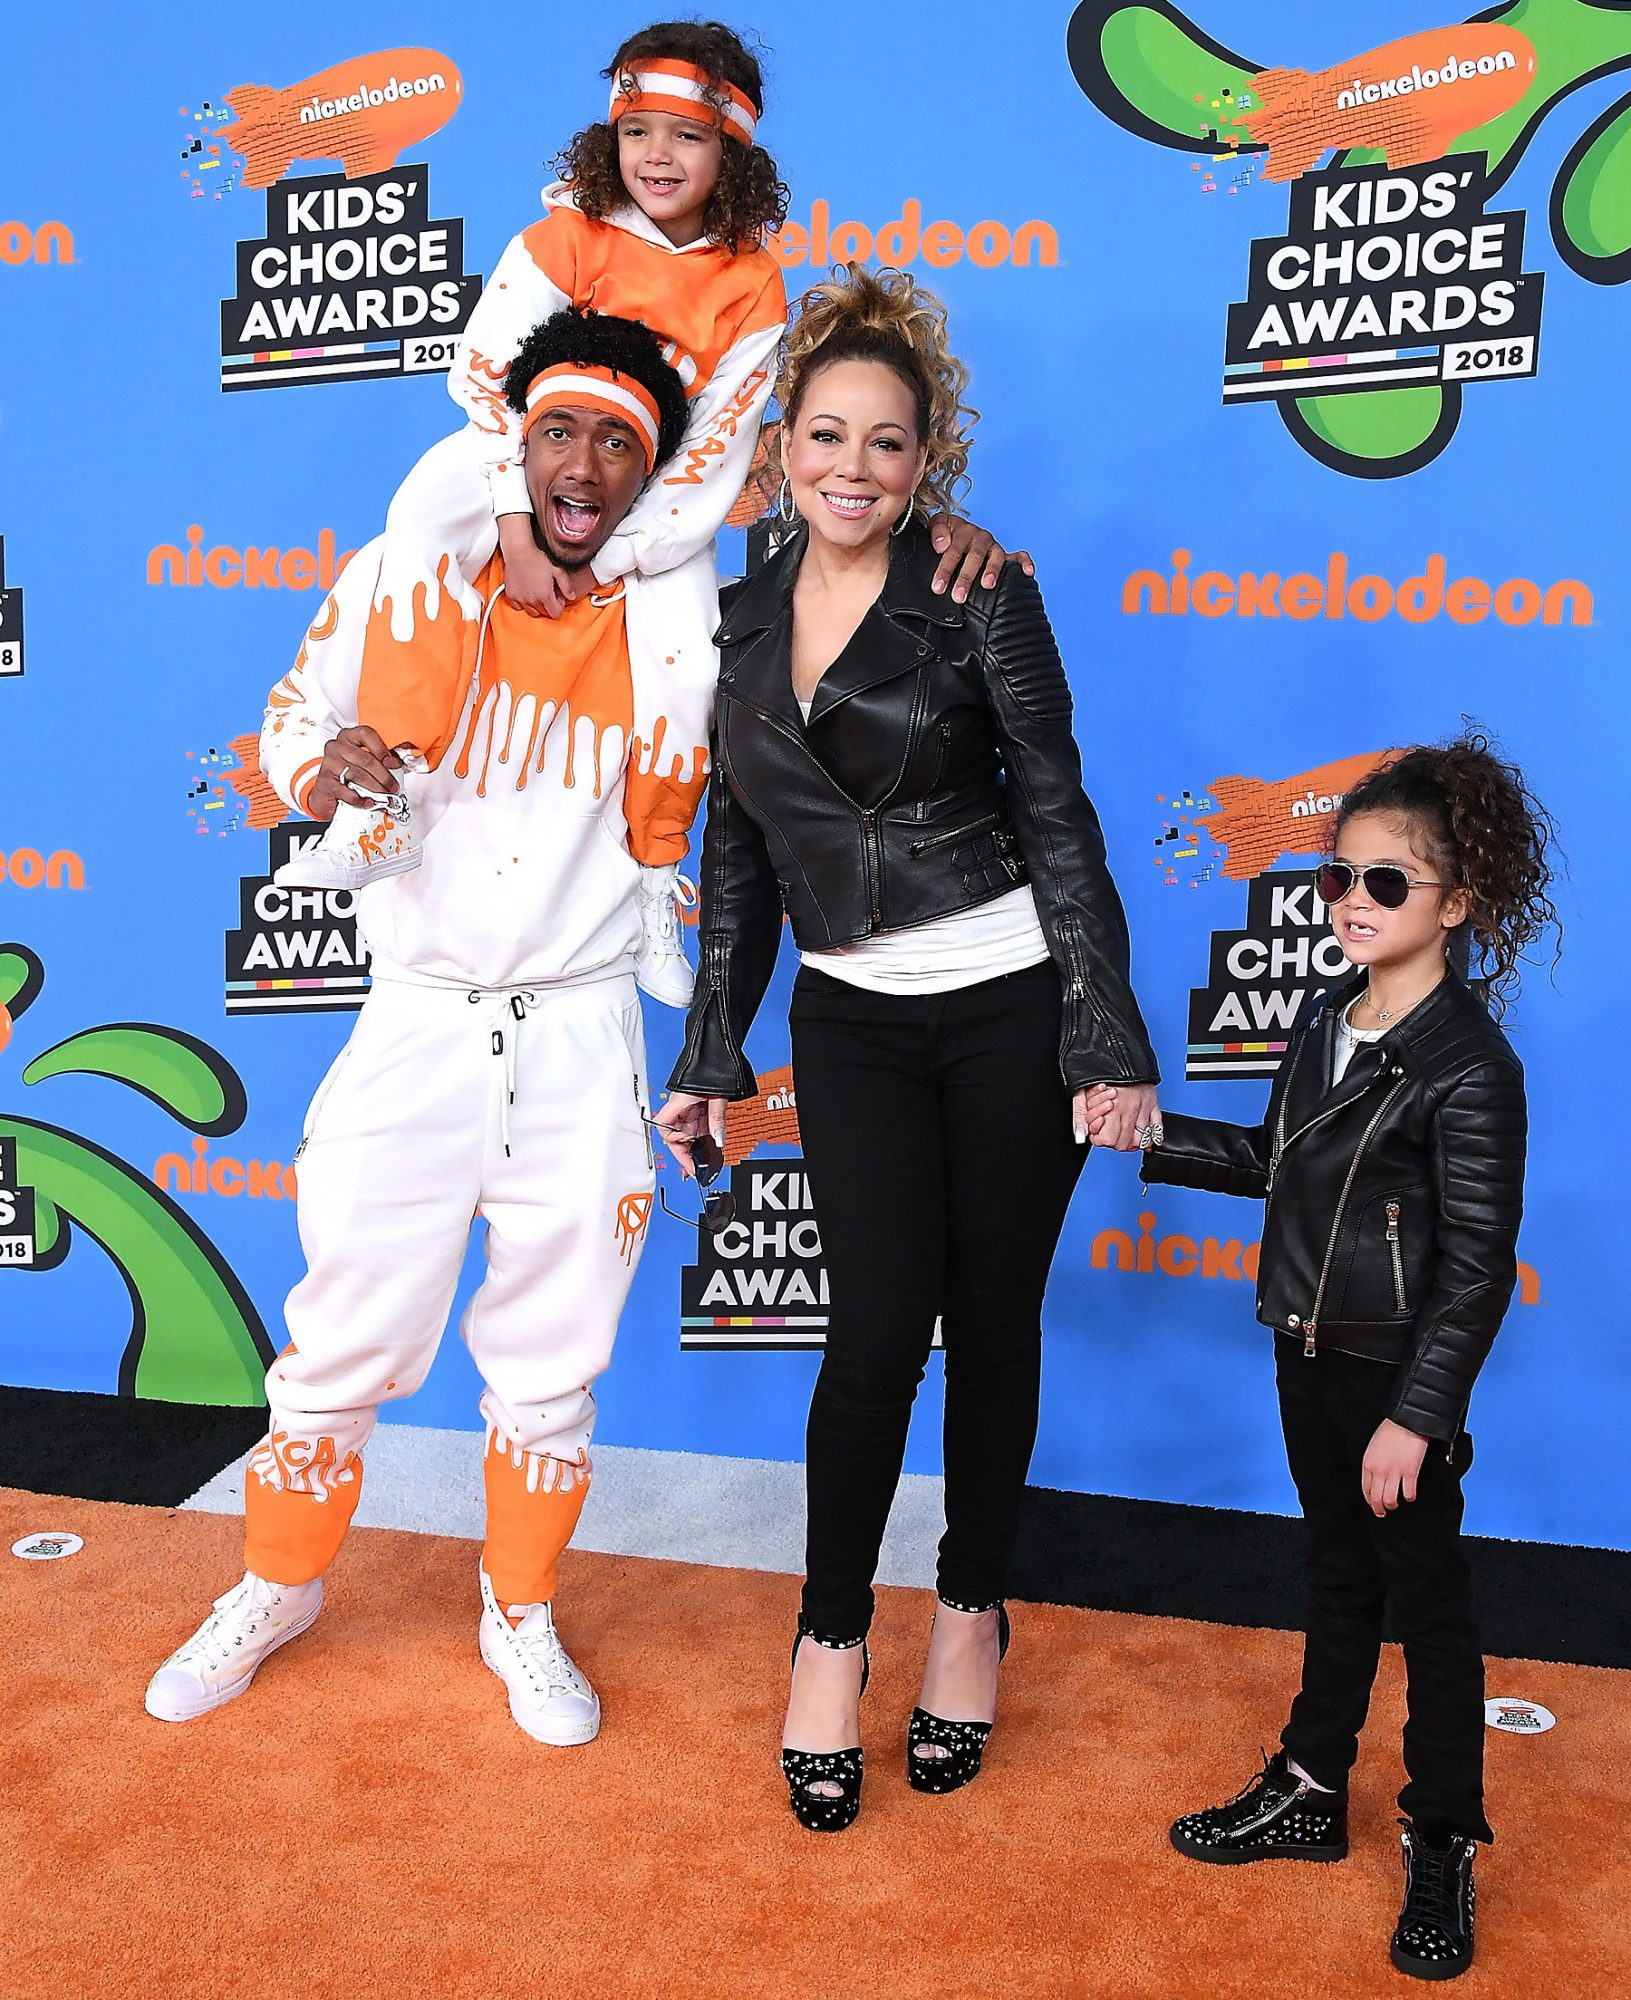 Nickelodeon's 2018 Kids' Choice Awards - Arrivals